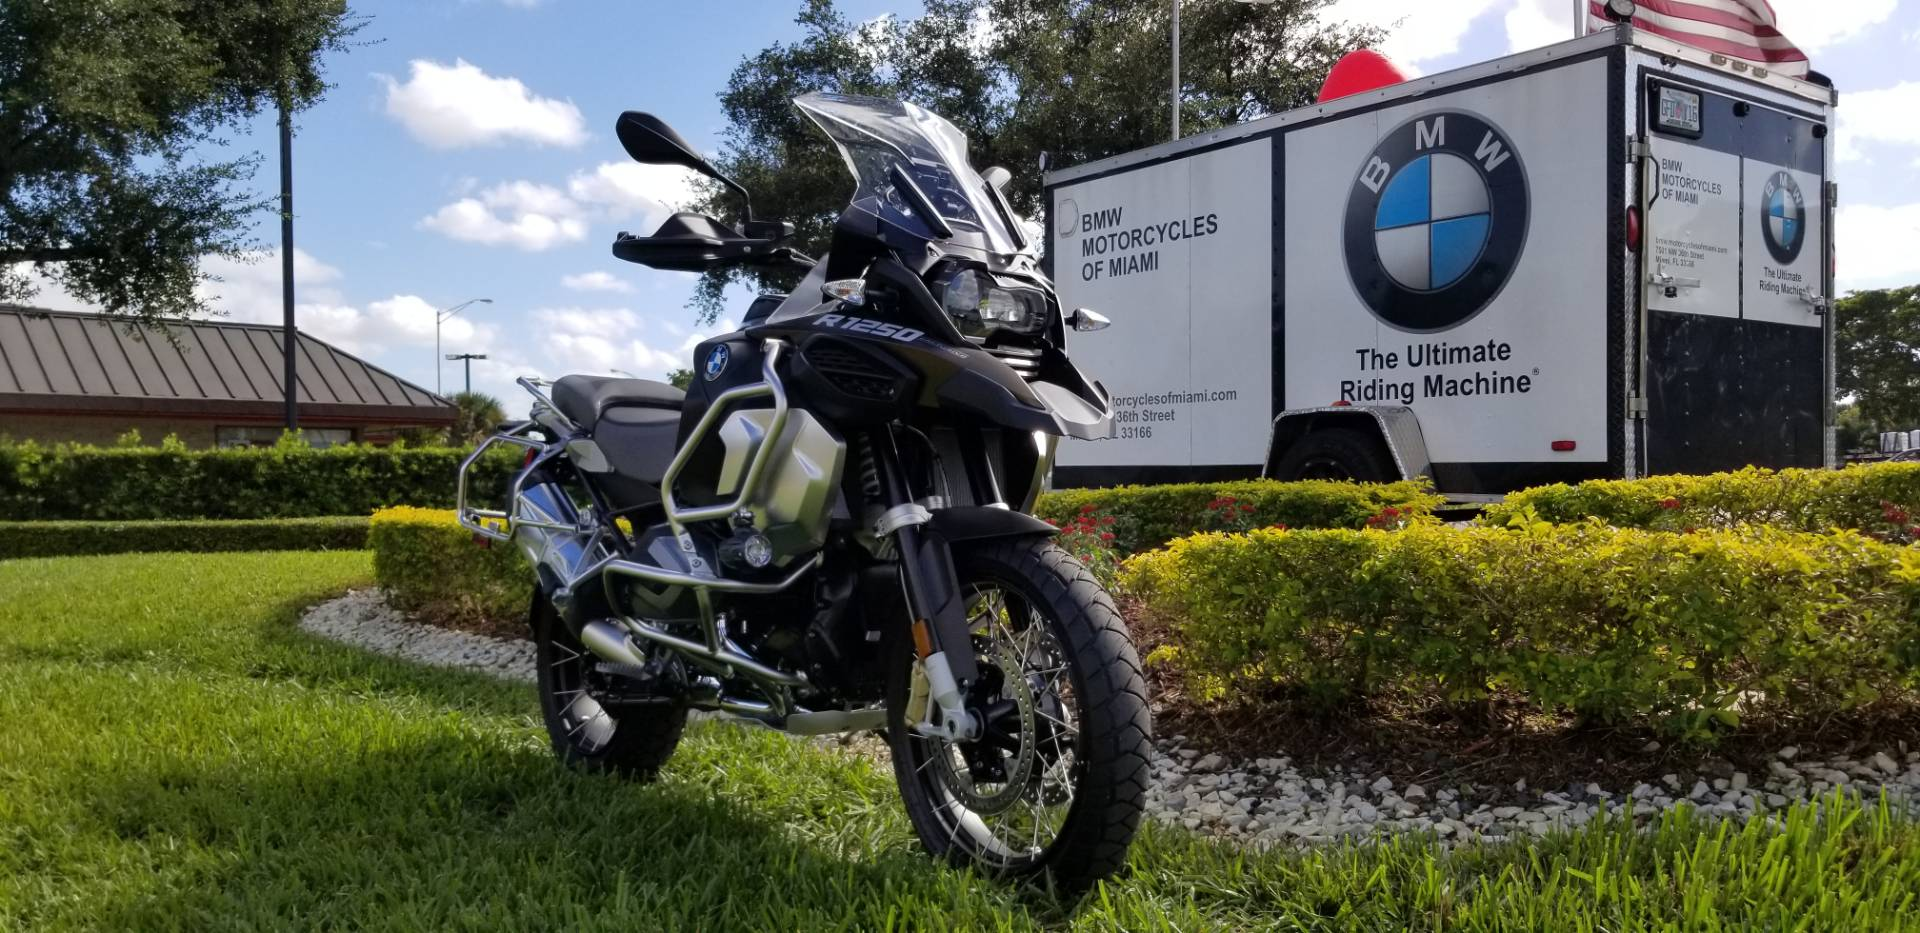 New 2019 BMW R 1250 GSA for sale, BMW for sale R 1250GSA, BMW Motorcycle R1250GSA, new BMW 1250GS Adventure, R1250GSAdventure, BMW Adventure, BMW Motorcycles of Miami, Motorcycles of Miami - Photo 33